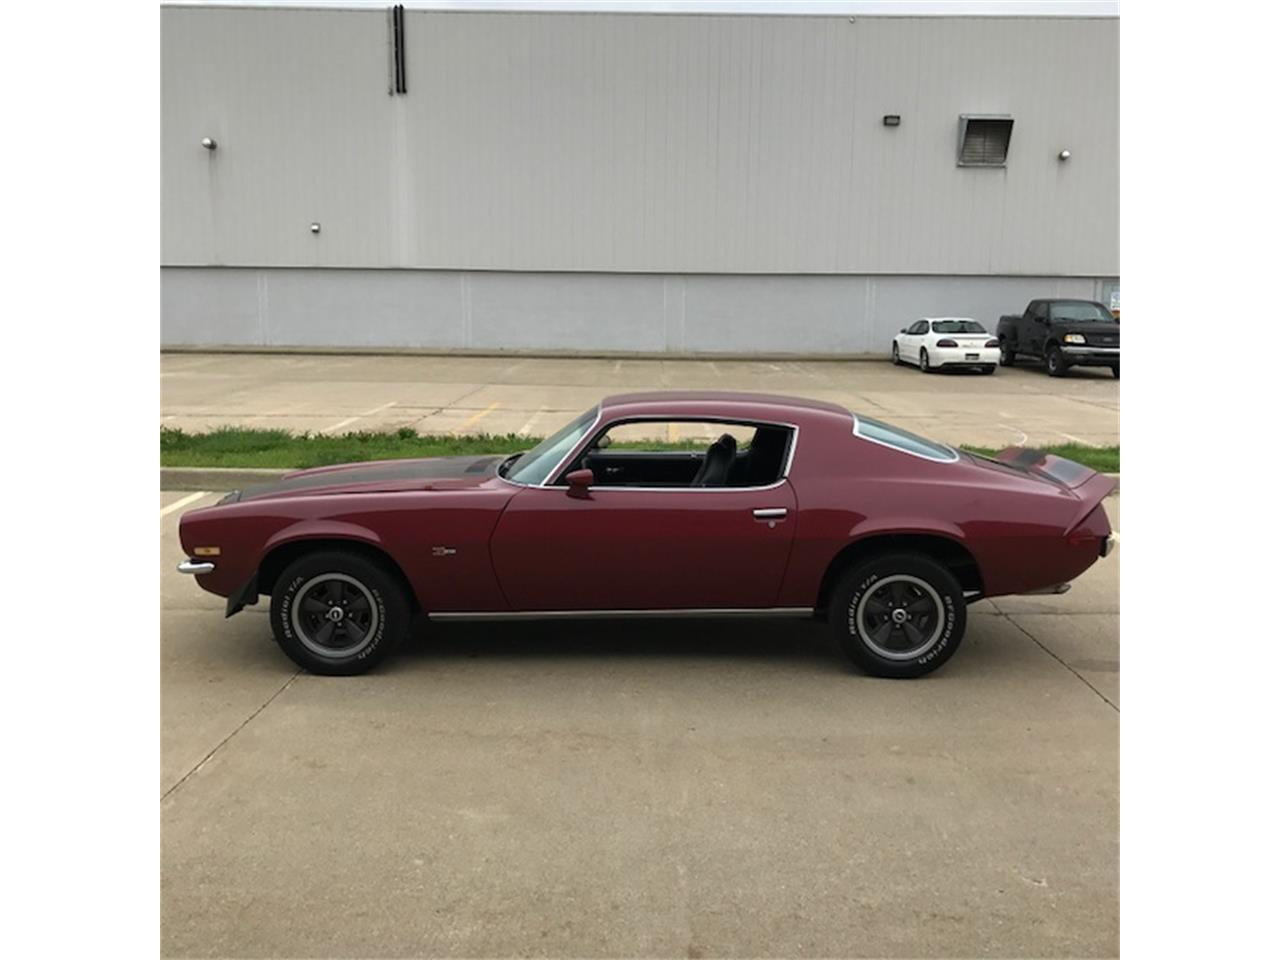 Large Picture of Classic 1973 Camaro Z28 located in Fort Myers/ Macomb, MI Florida - $24,900.00 - KZZ6